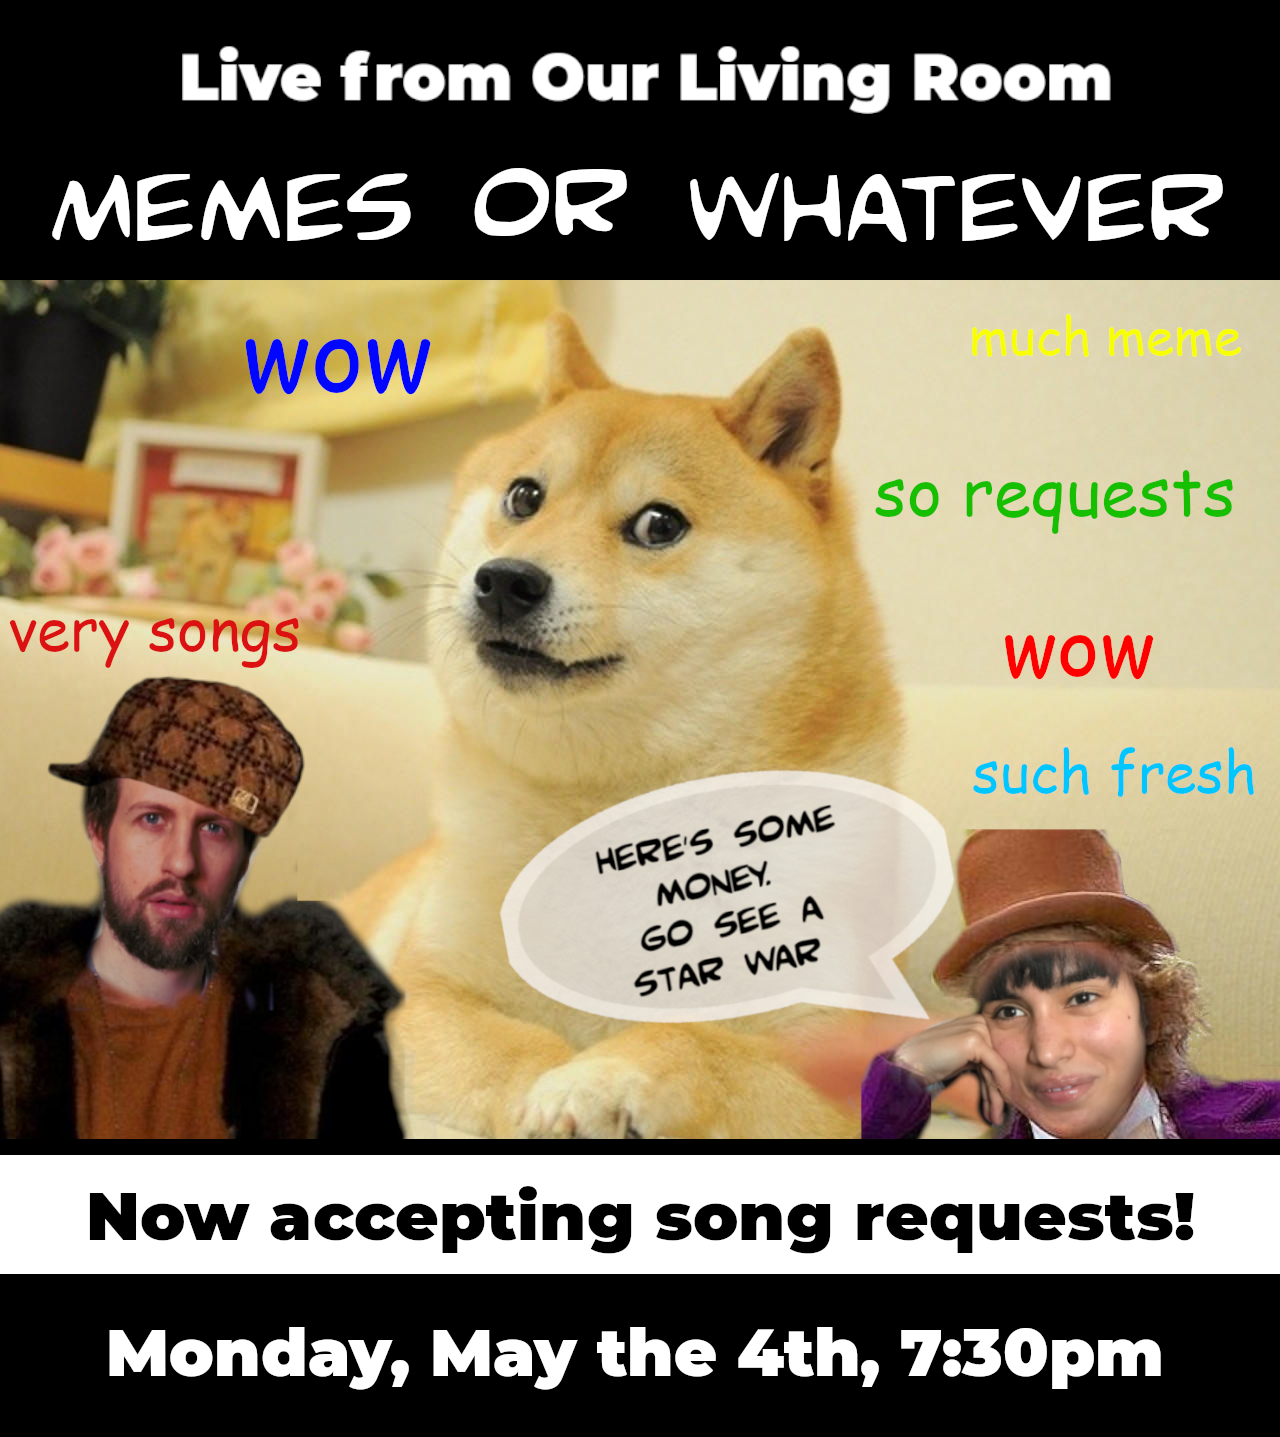 Memes and Requests